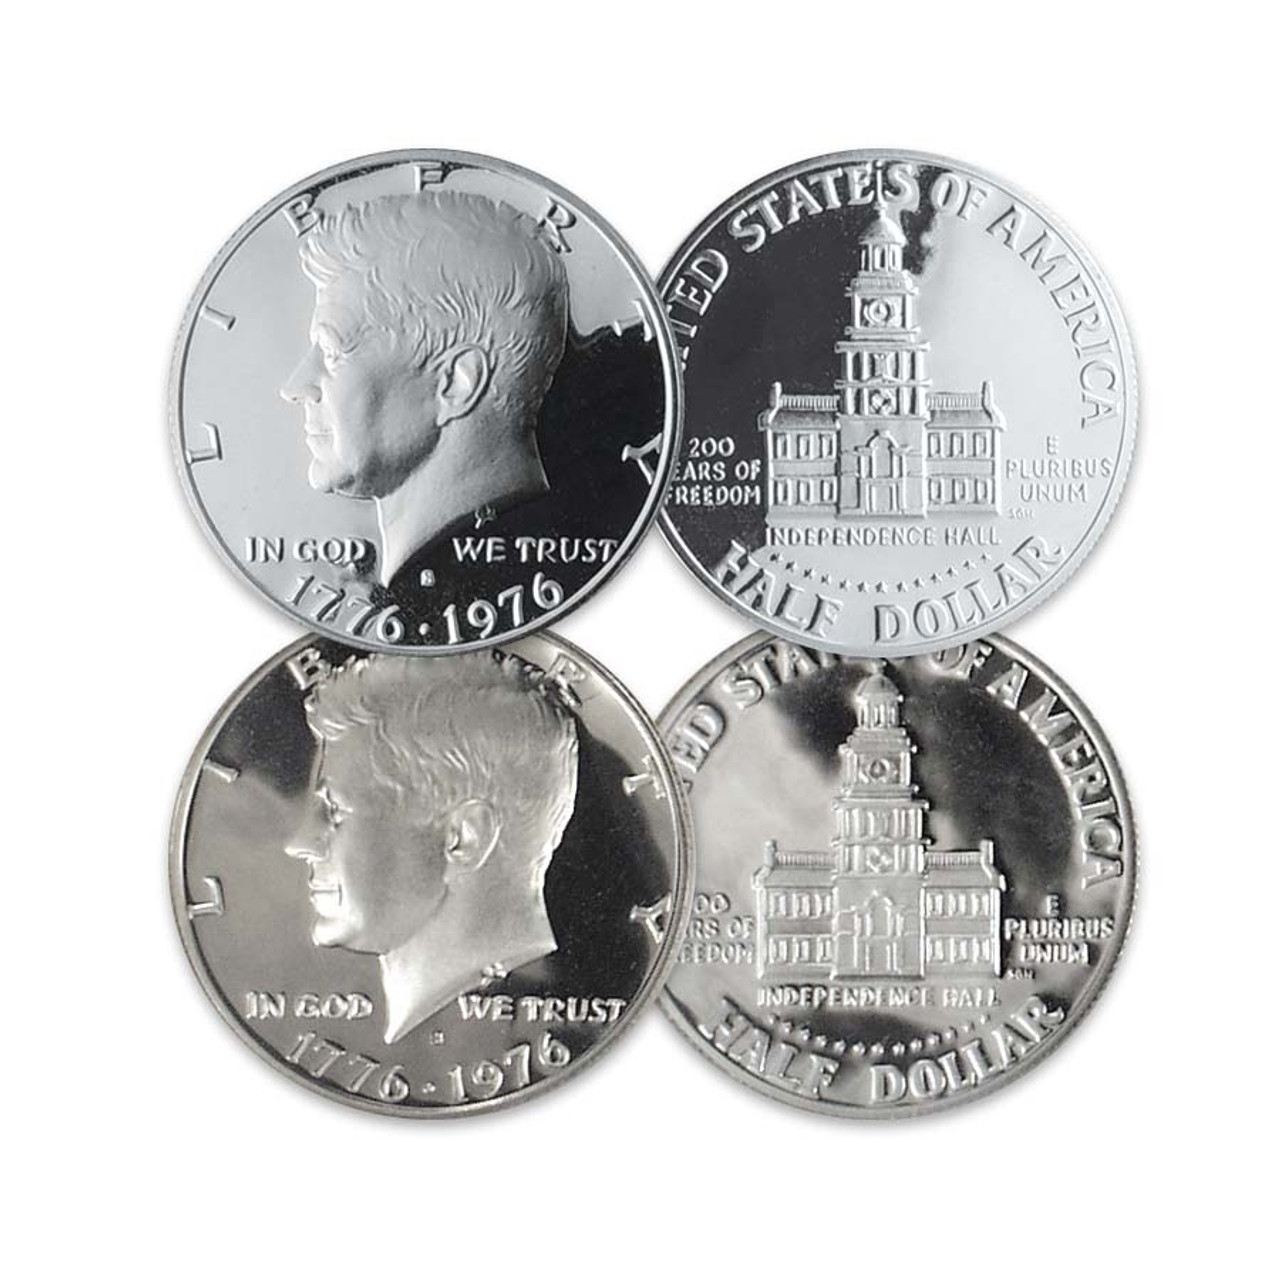 1976-S Kennedy 40% Silver Half Dollar Proof with FREE 1976-S Kennedy CN Proof